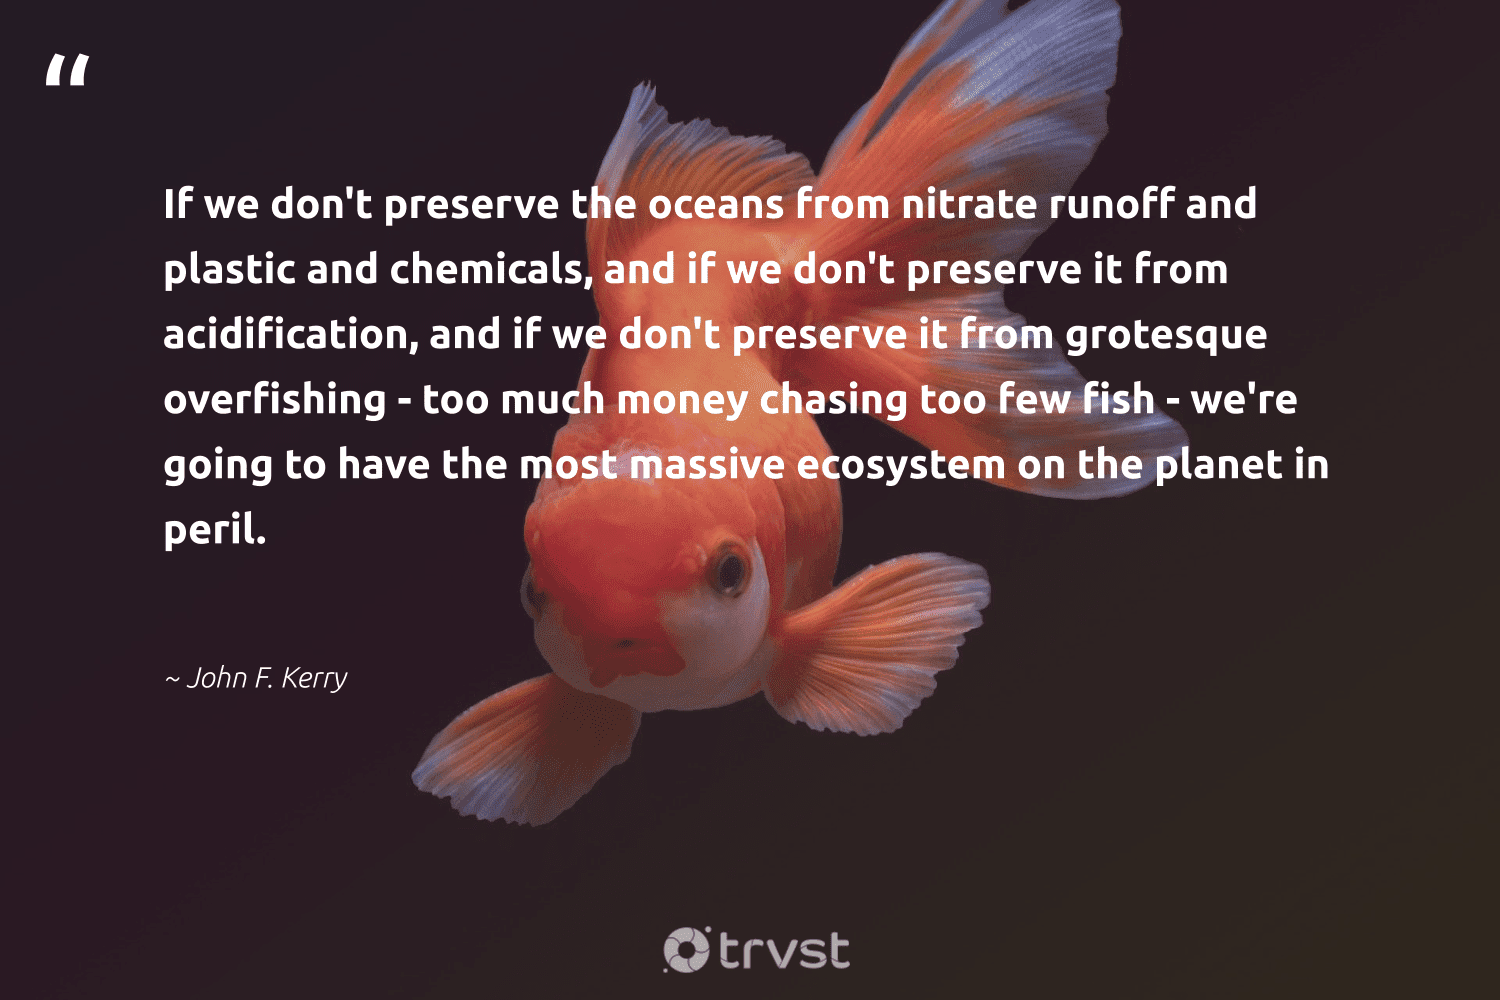 """""""If we don't preserve the oceans from nitrate runoff and plastic and chemicals, and if we don't preserve it from acidification, and if we don't preserve it from grotesque overfishing - too much money chasing too few fish - we're going to have the most massive ecosystem on the planet in peril.""""  - John F. Kerry #trvst #quotes #plastic #planet #fish #oceans #ourplasticproblem #healthyocean #wasteless #beinspired #microplastics #oceanconservation"""